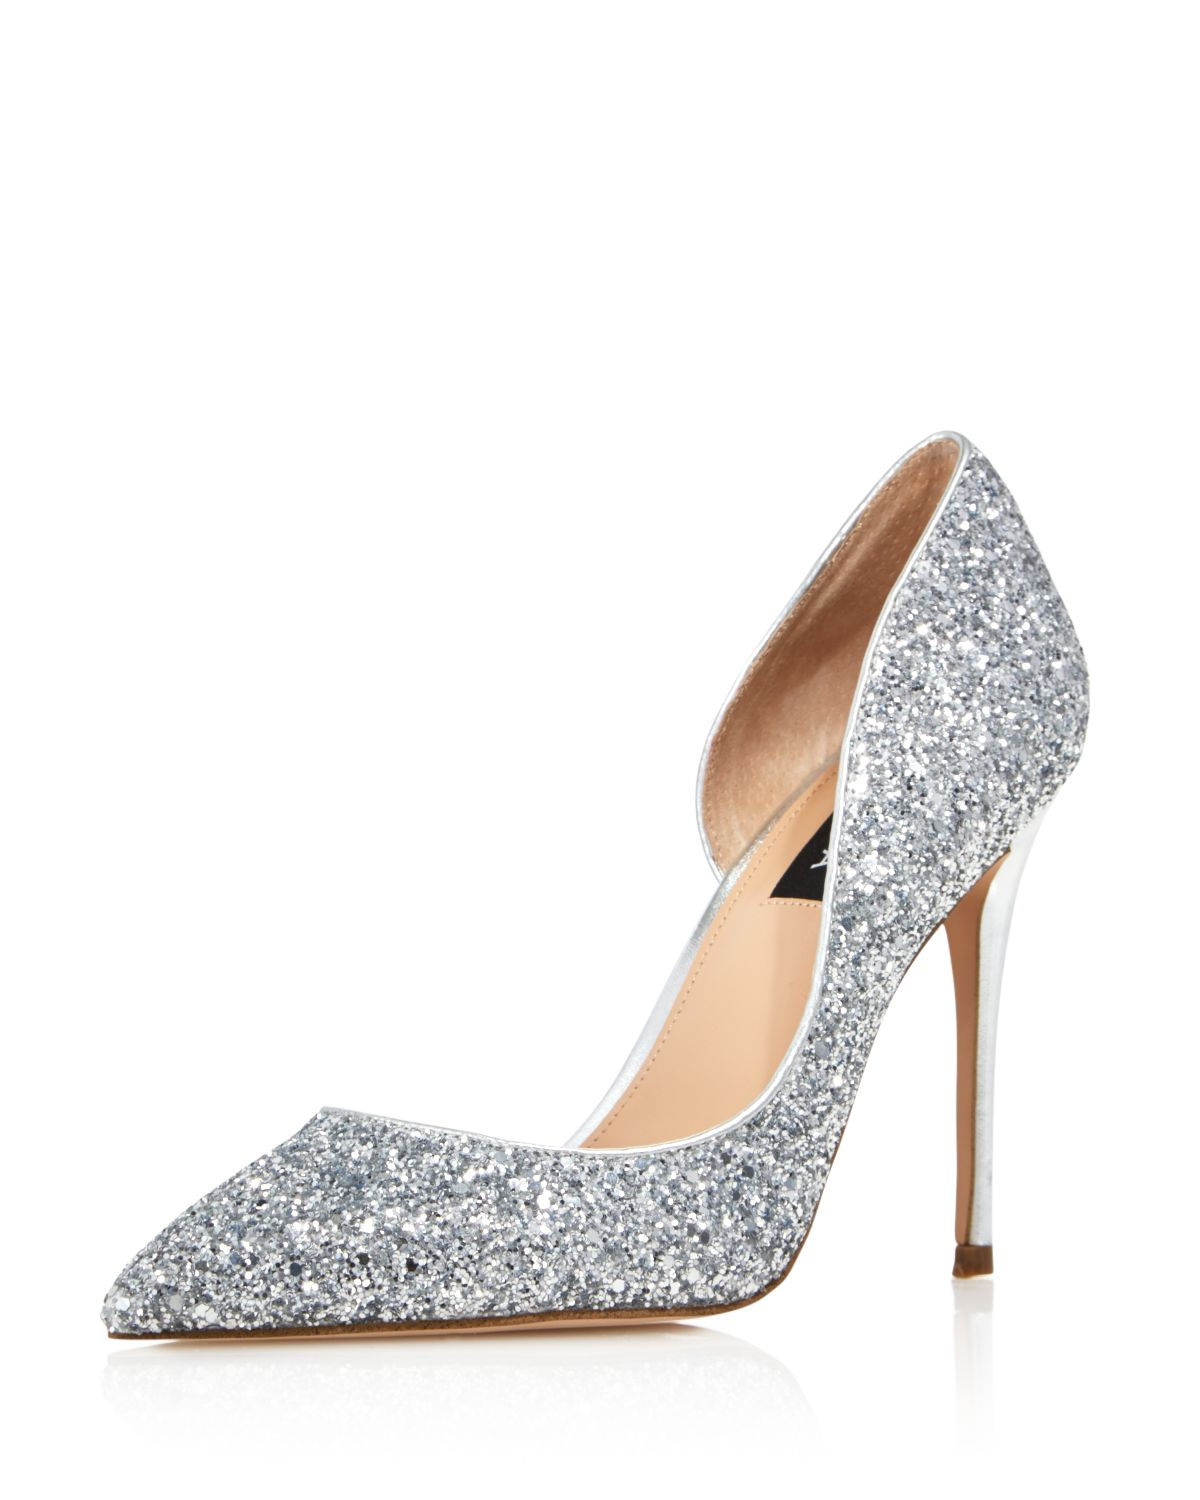 Aqua Women's Dion Glitter Embellished High-Heel d'Orsay Pumps - 100% Exclusive